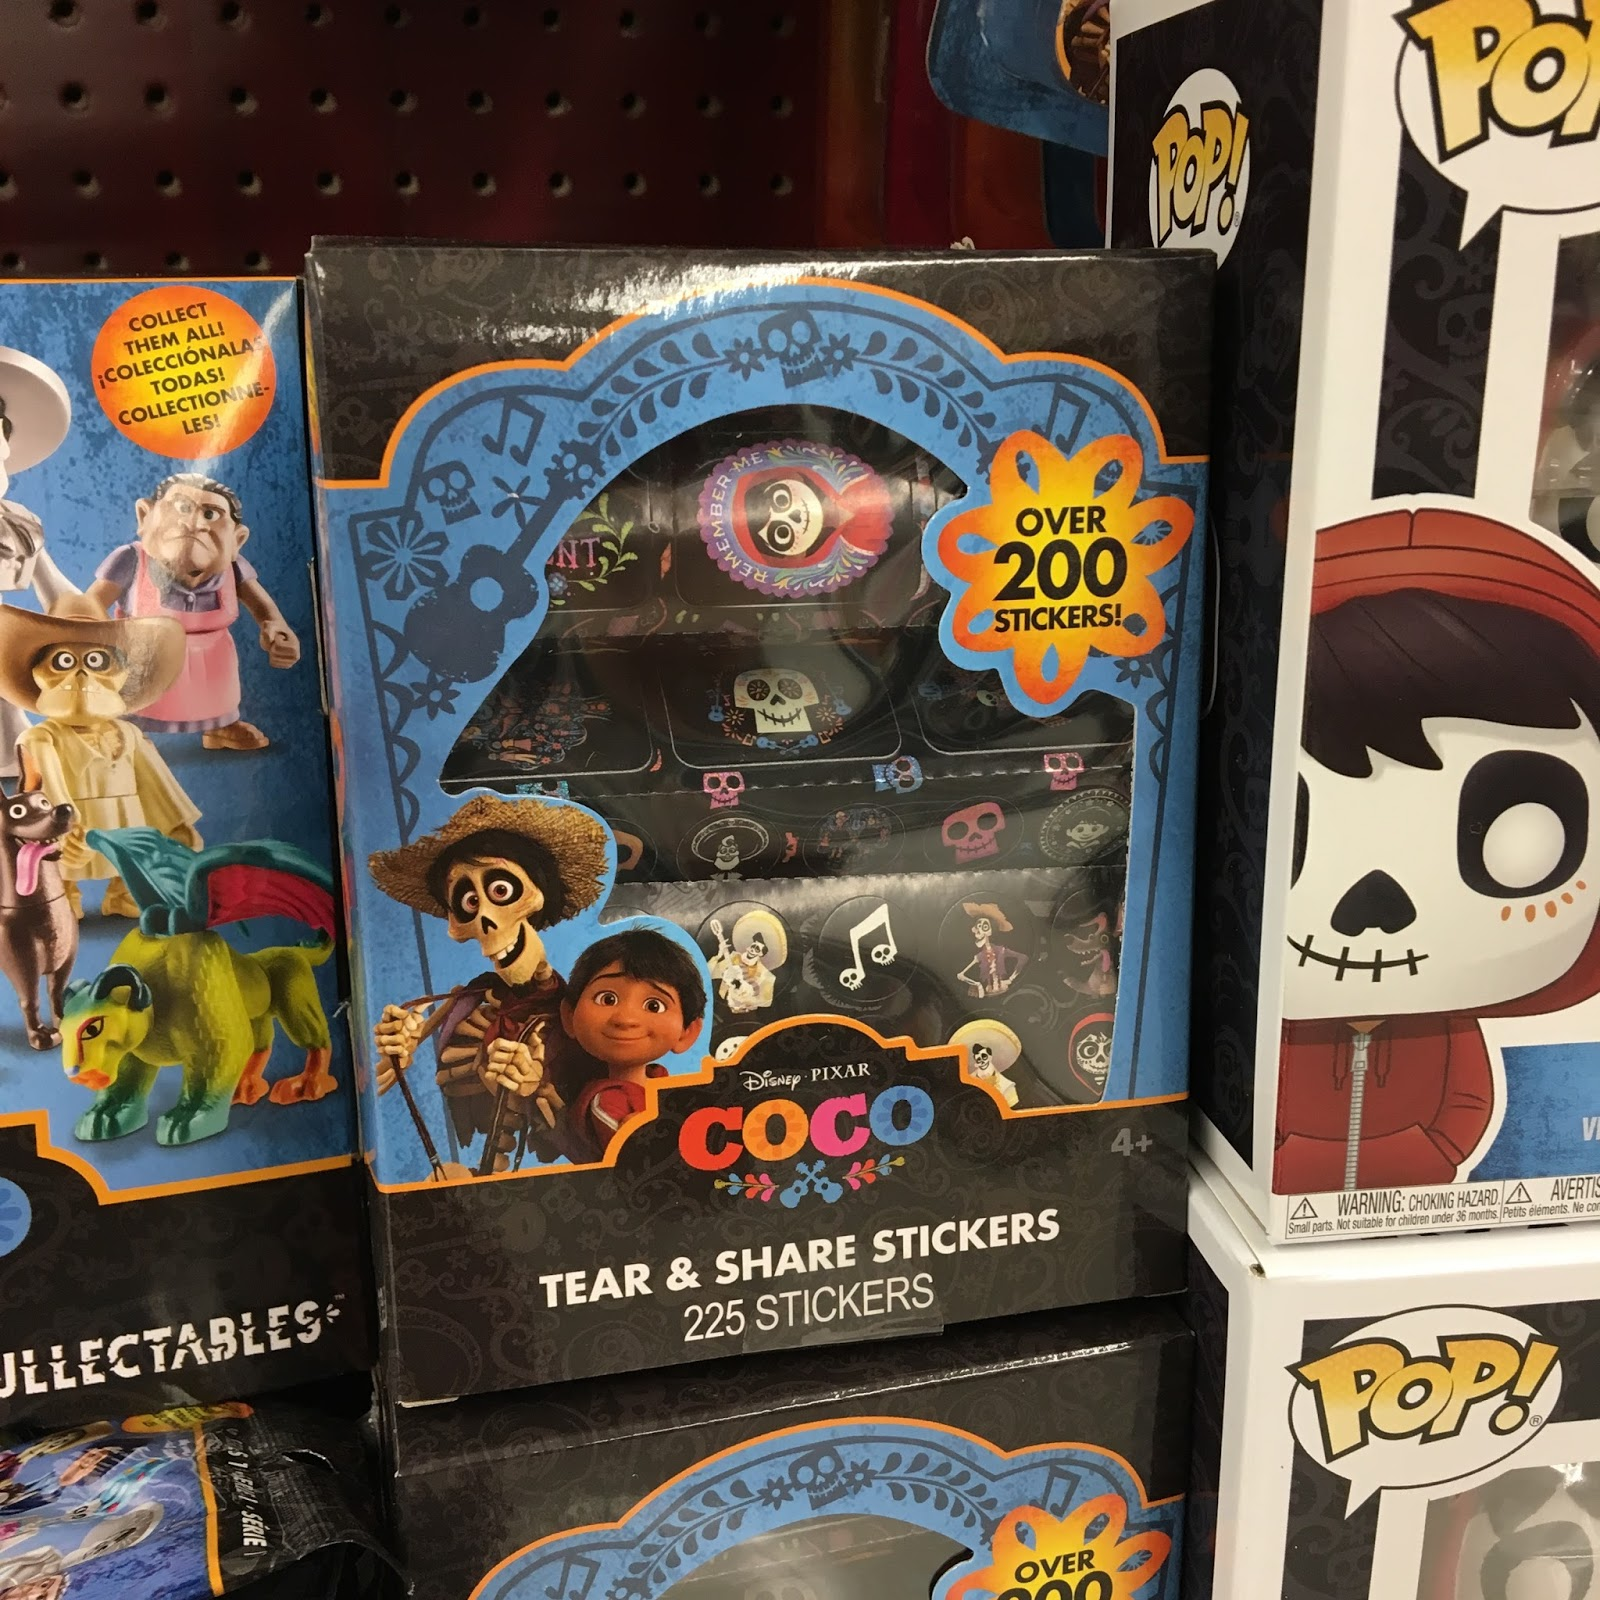 pixar coco stickers